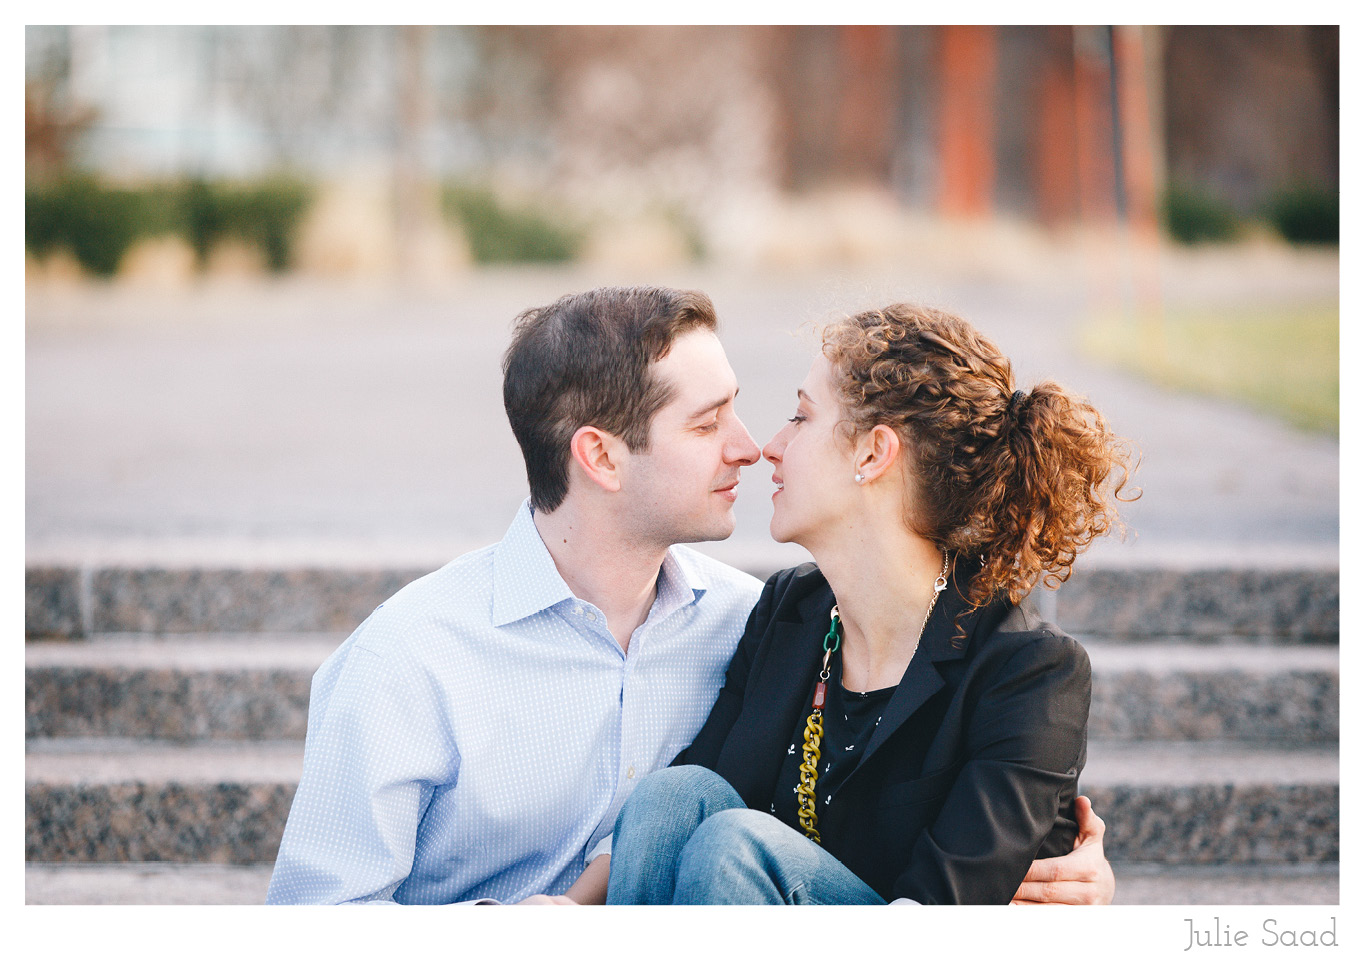 Romantic Color Engagement Photo